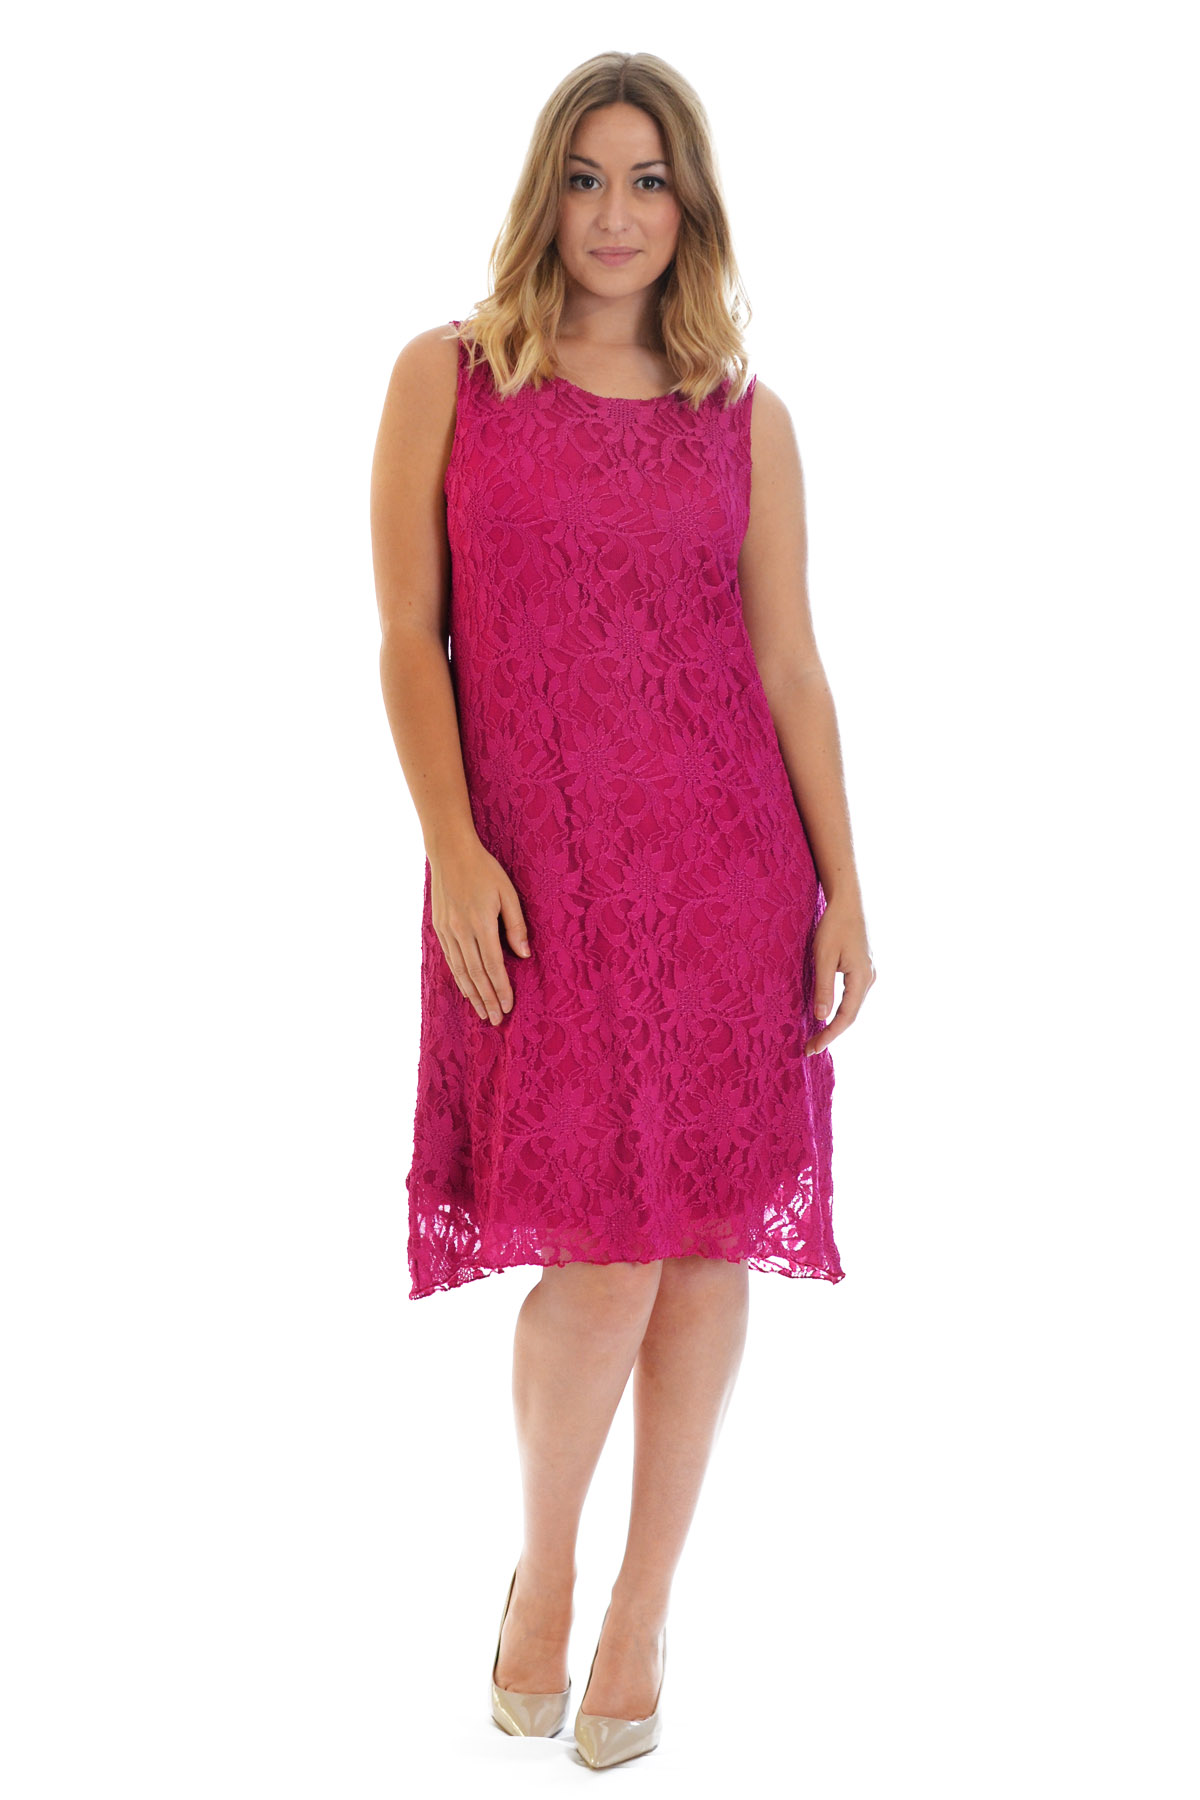 Free shipping BOTH ways on Dresses, Women, Tunic Dresses, from our vast selection of styles. Fast delivery, and 24/7/ real-person service with a smile. Click or call